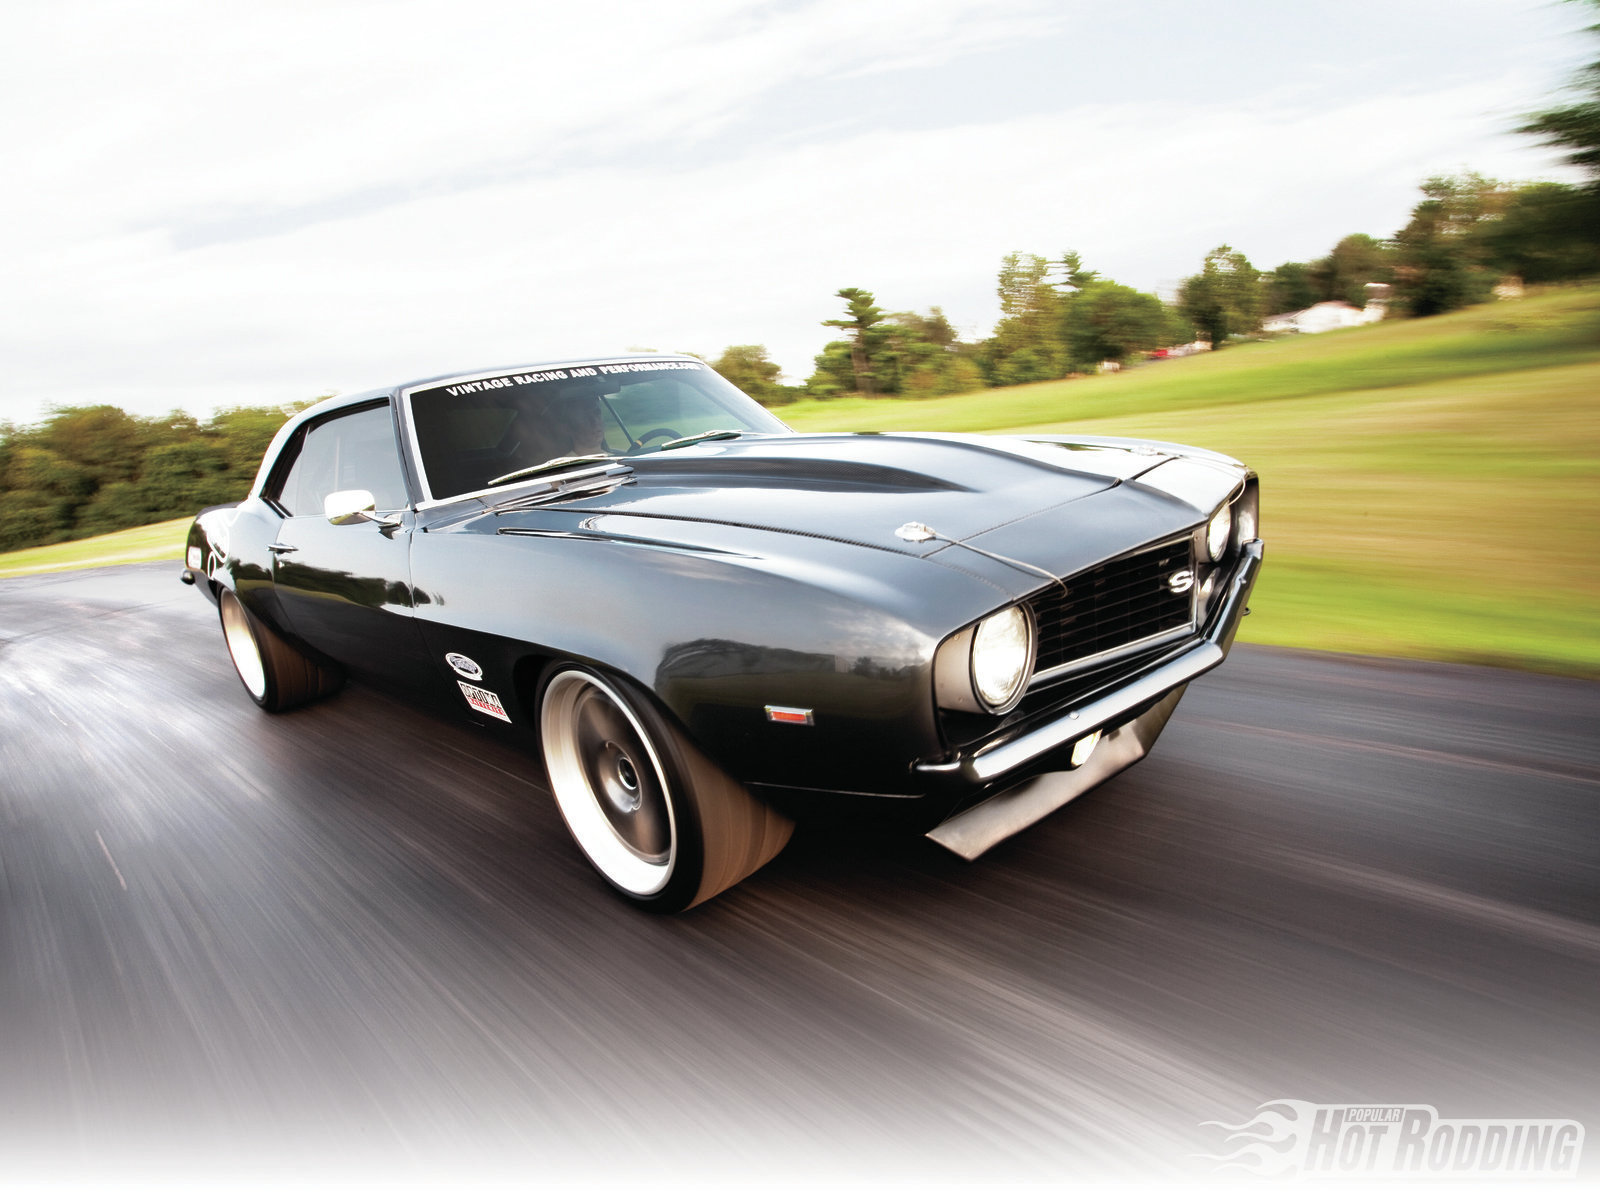 Camaro ss 1969 wallpapers images photos pictures backgrounds - Camaro ss ...